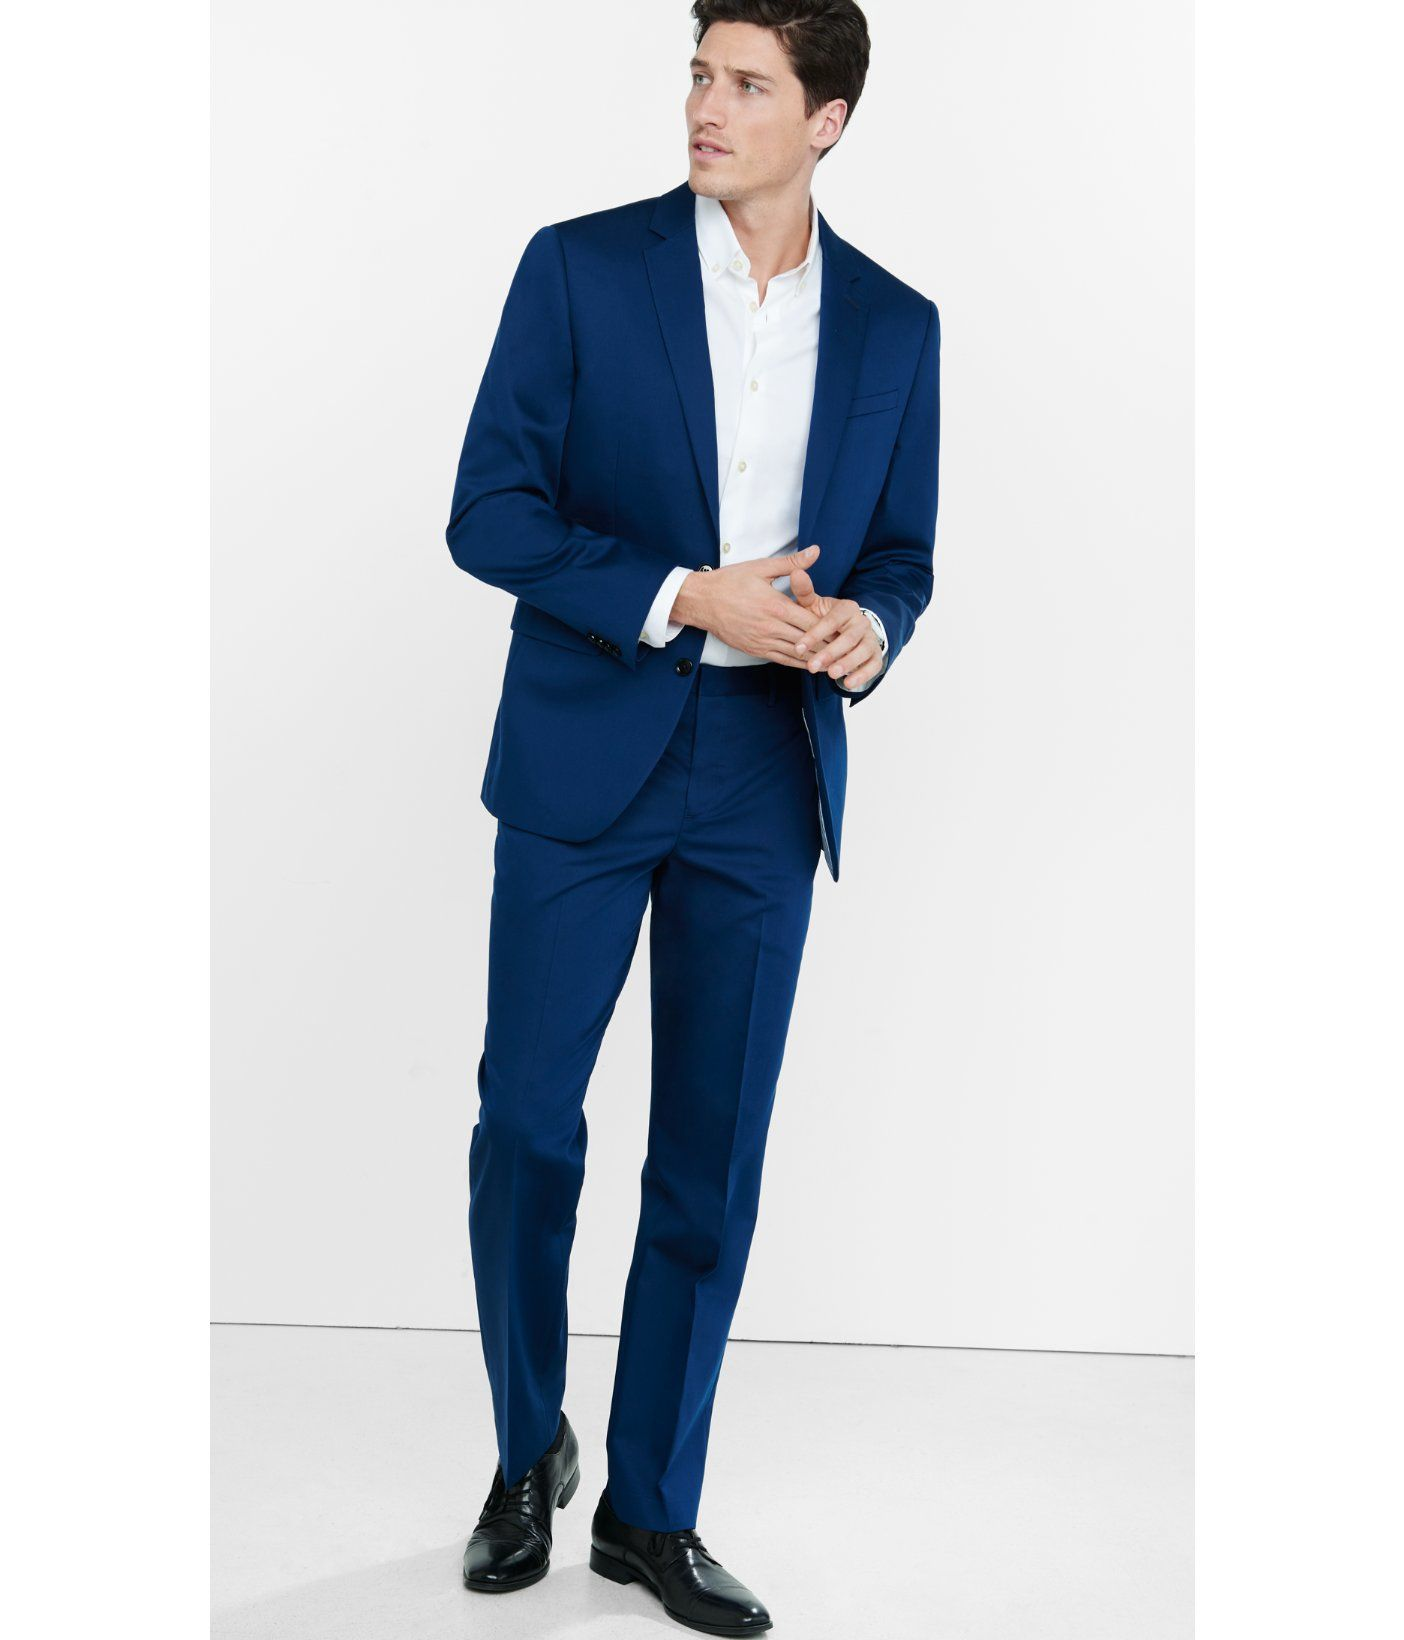 1df61a082d9 Men s Photographer Cotton Sateen Navy Blue Suit Pant